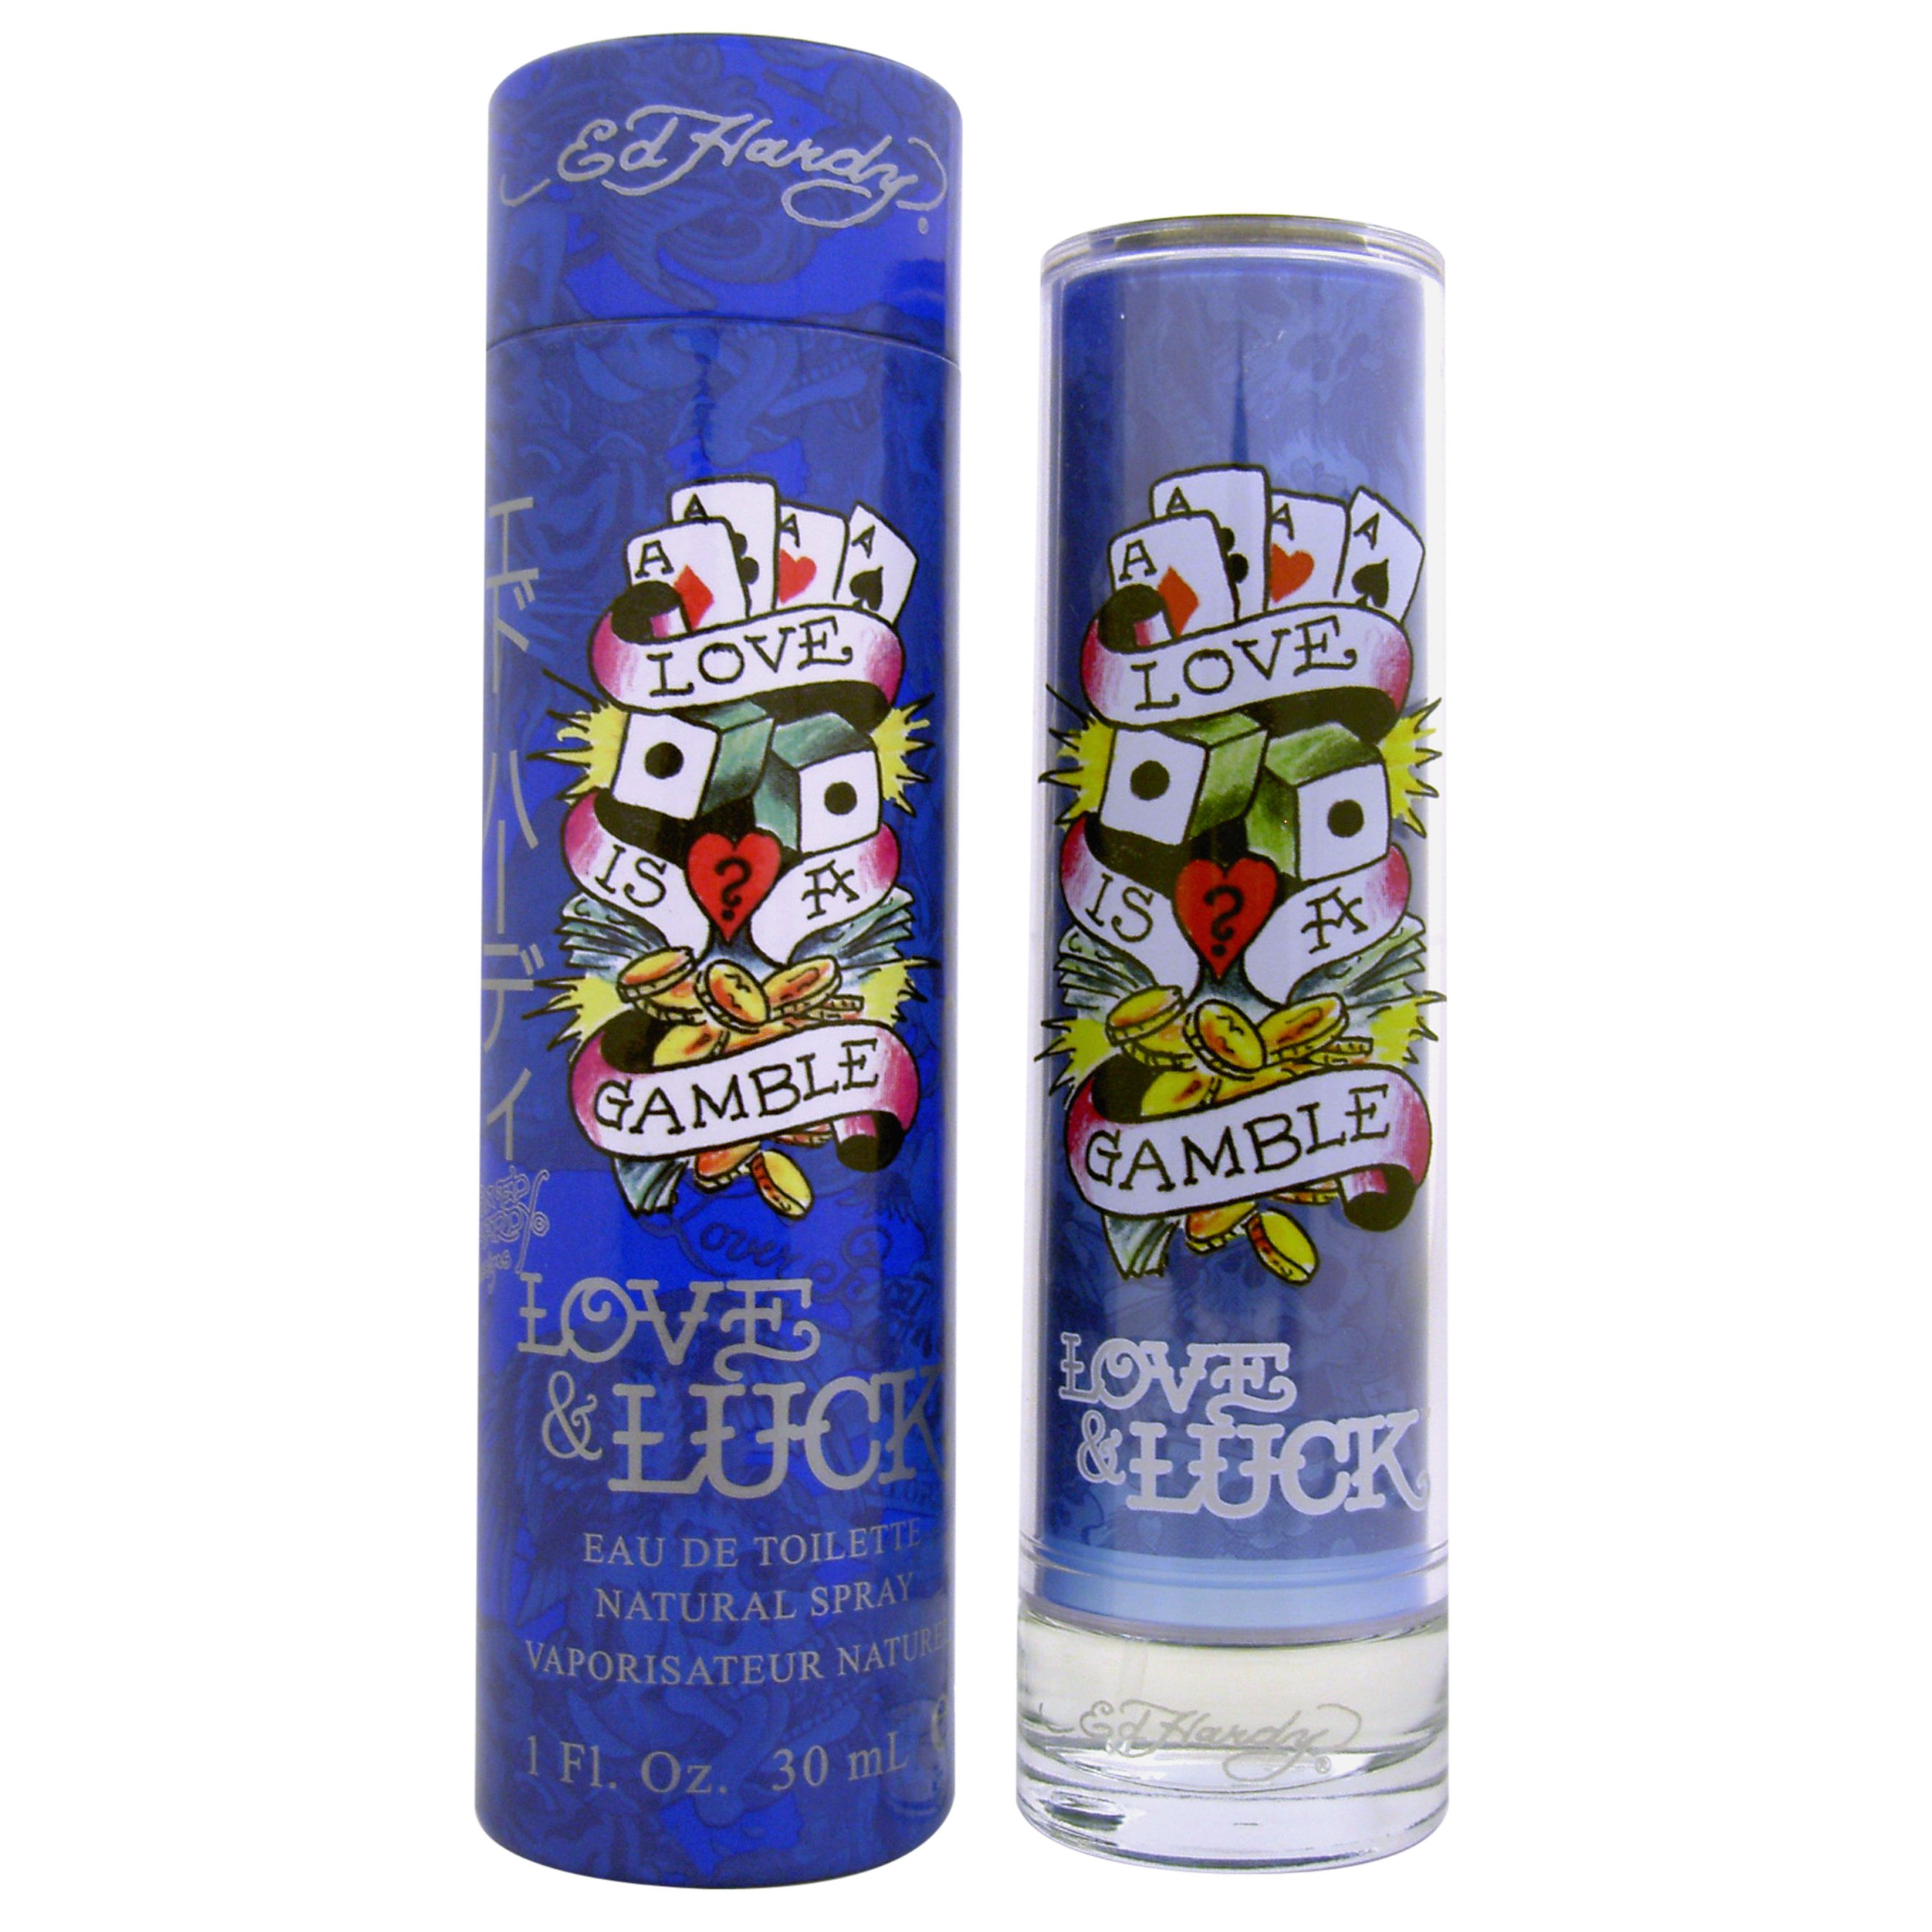 Christian Audigier Ed Hardy Love & Lucks (Gamble) Eau de Toilette